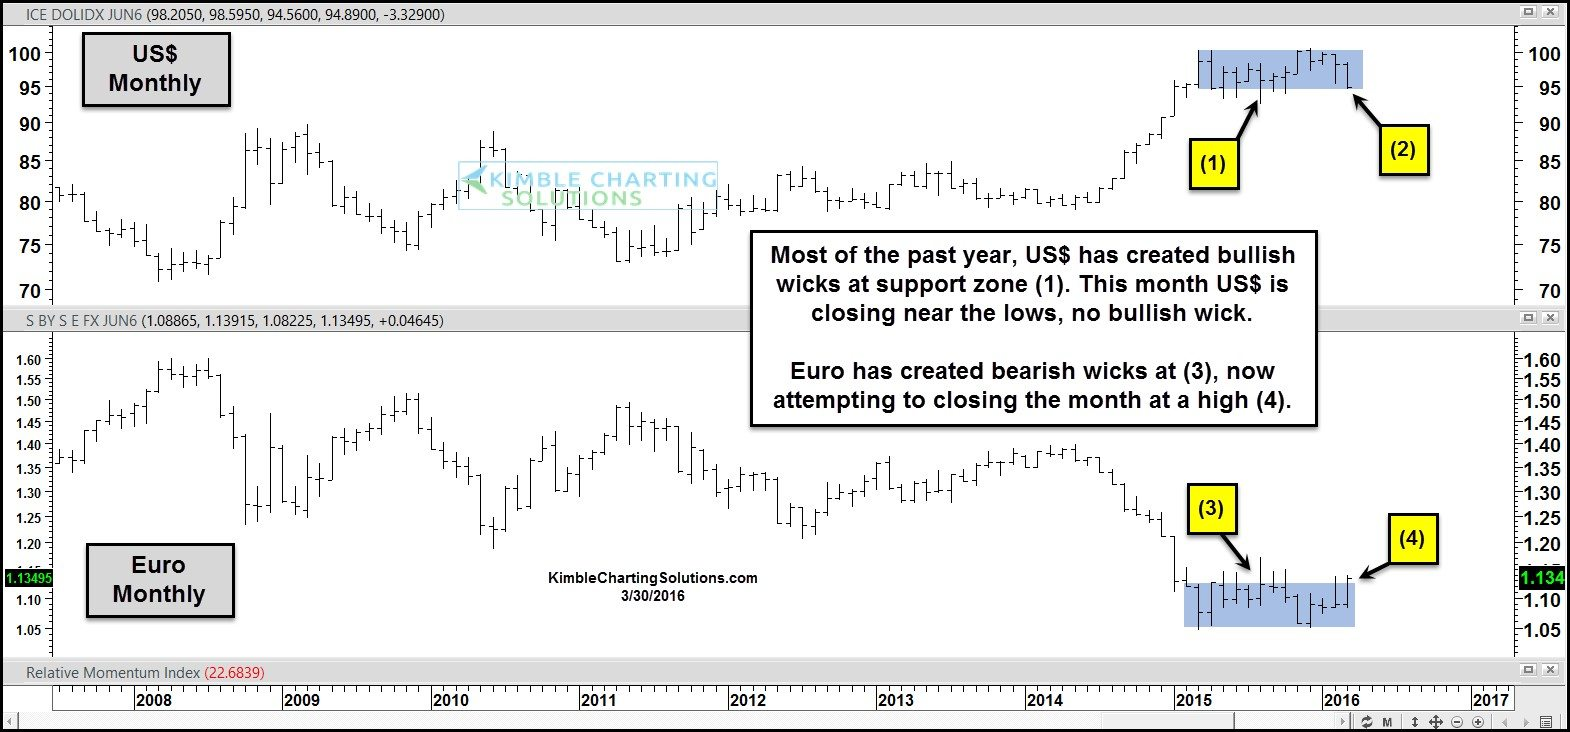 US Dollar UUP Euro charts inversely correlated